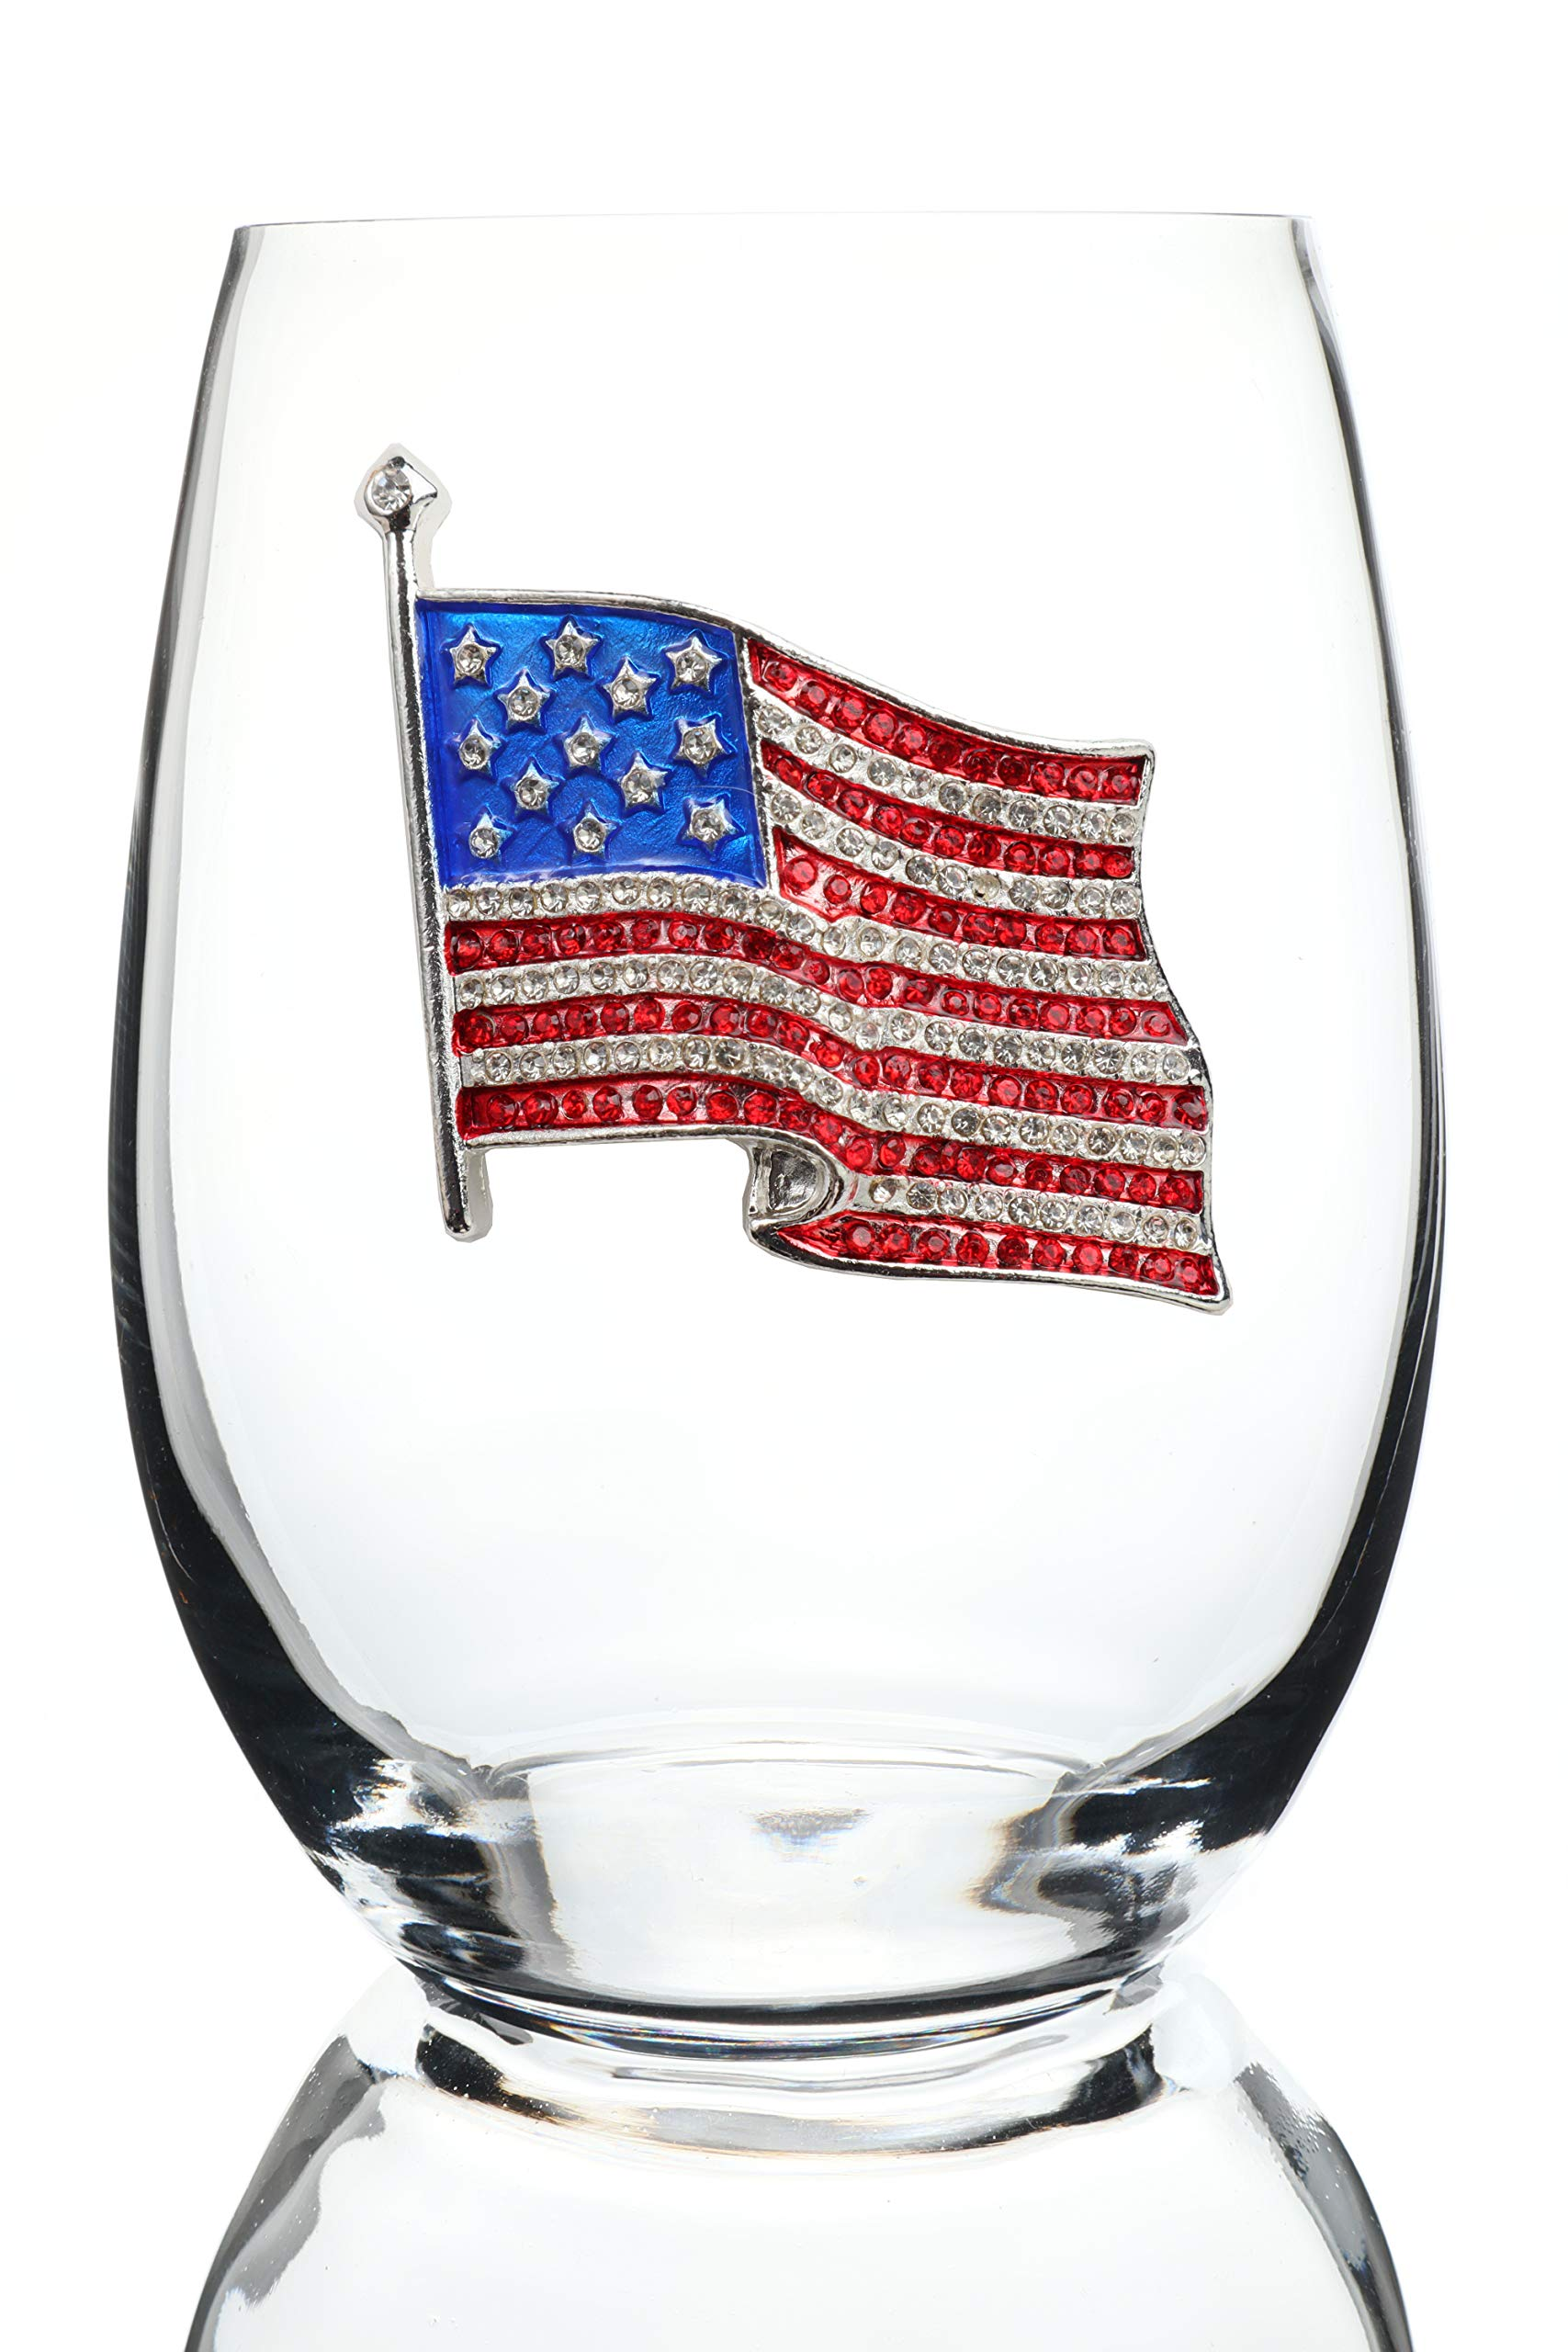 THE QUEENS' JEWELS American Flag Jeweled Stemless Wine Glass - Unique Gift for Women, Cute, Fun, Fourth of July, Not Painted, Decorated, Bling, Bedazzled, Rhinestone